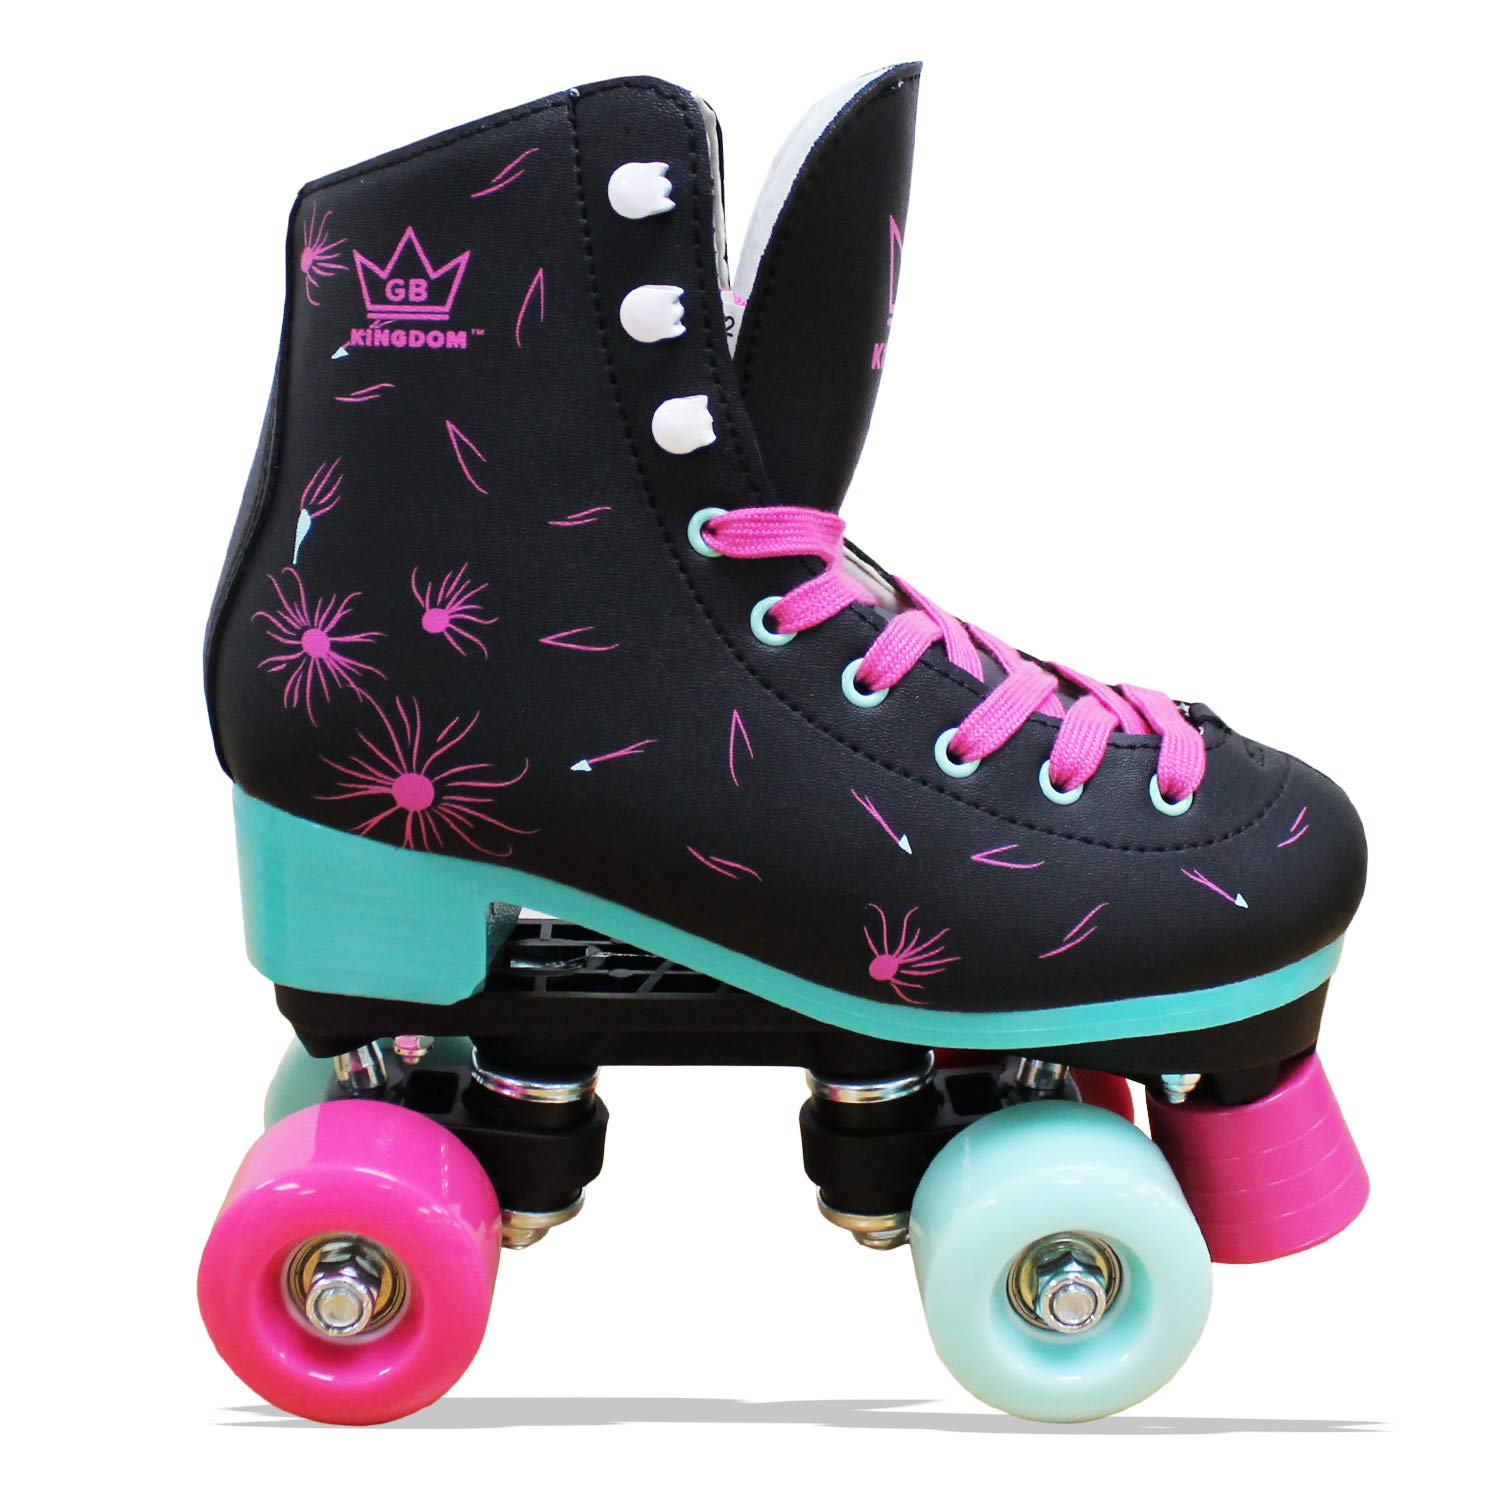 Kingdom GB Patines de Ruedas Venus Quad Wheels